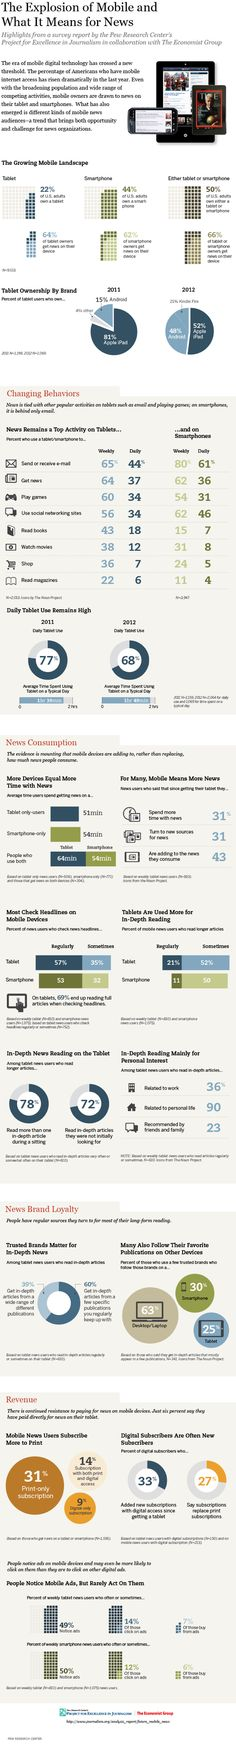 [Infographic] Mobile Users Consume More News